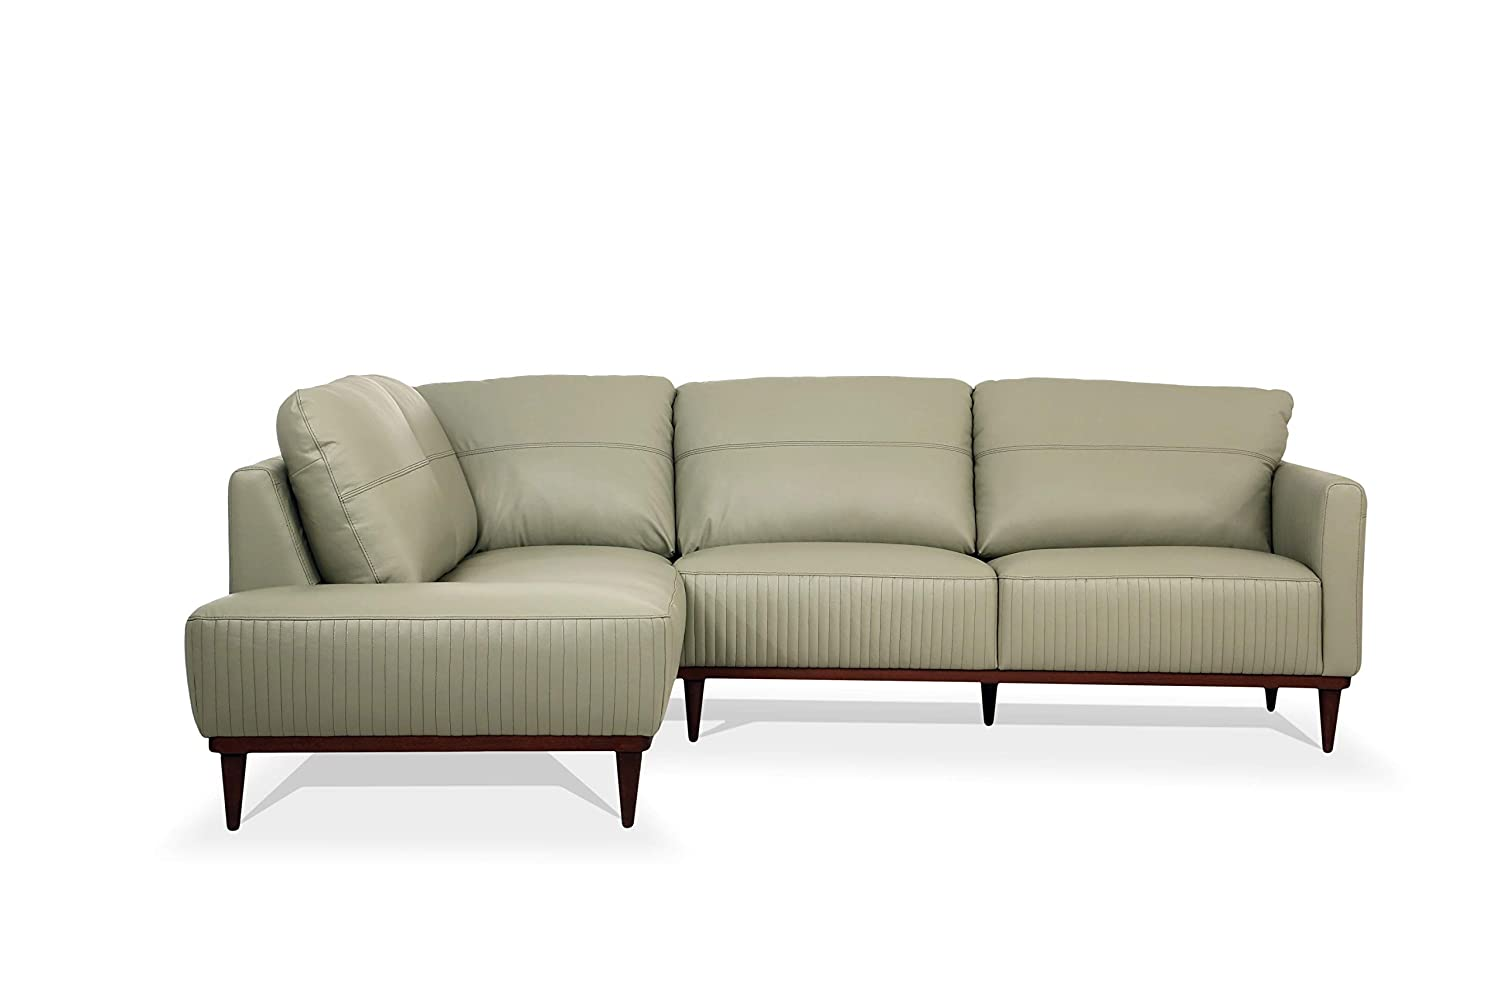 Admirable Amazon Com Acme Furniture 54995 Tampa Sectional Sofa Airy Alphanode Cool Chair Designs And Ideas Alphanodeonline